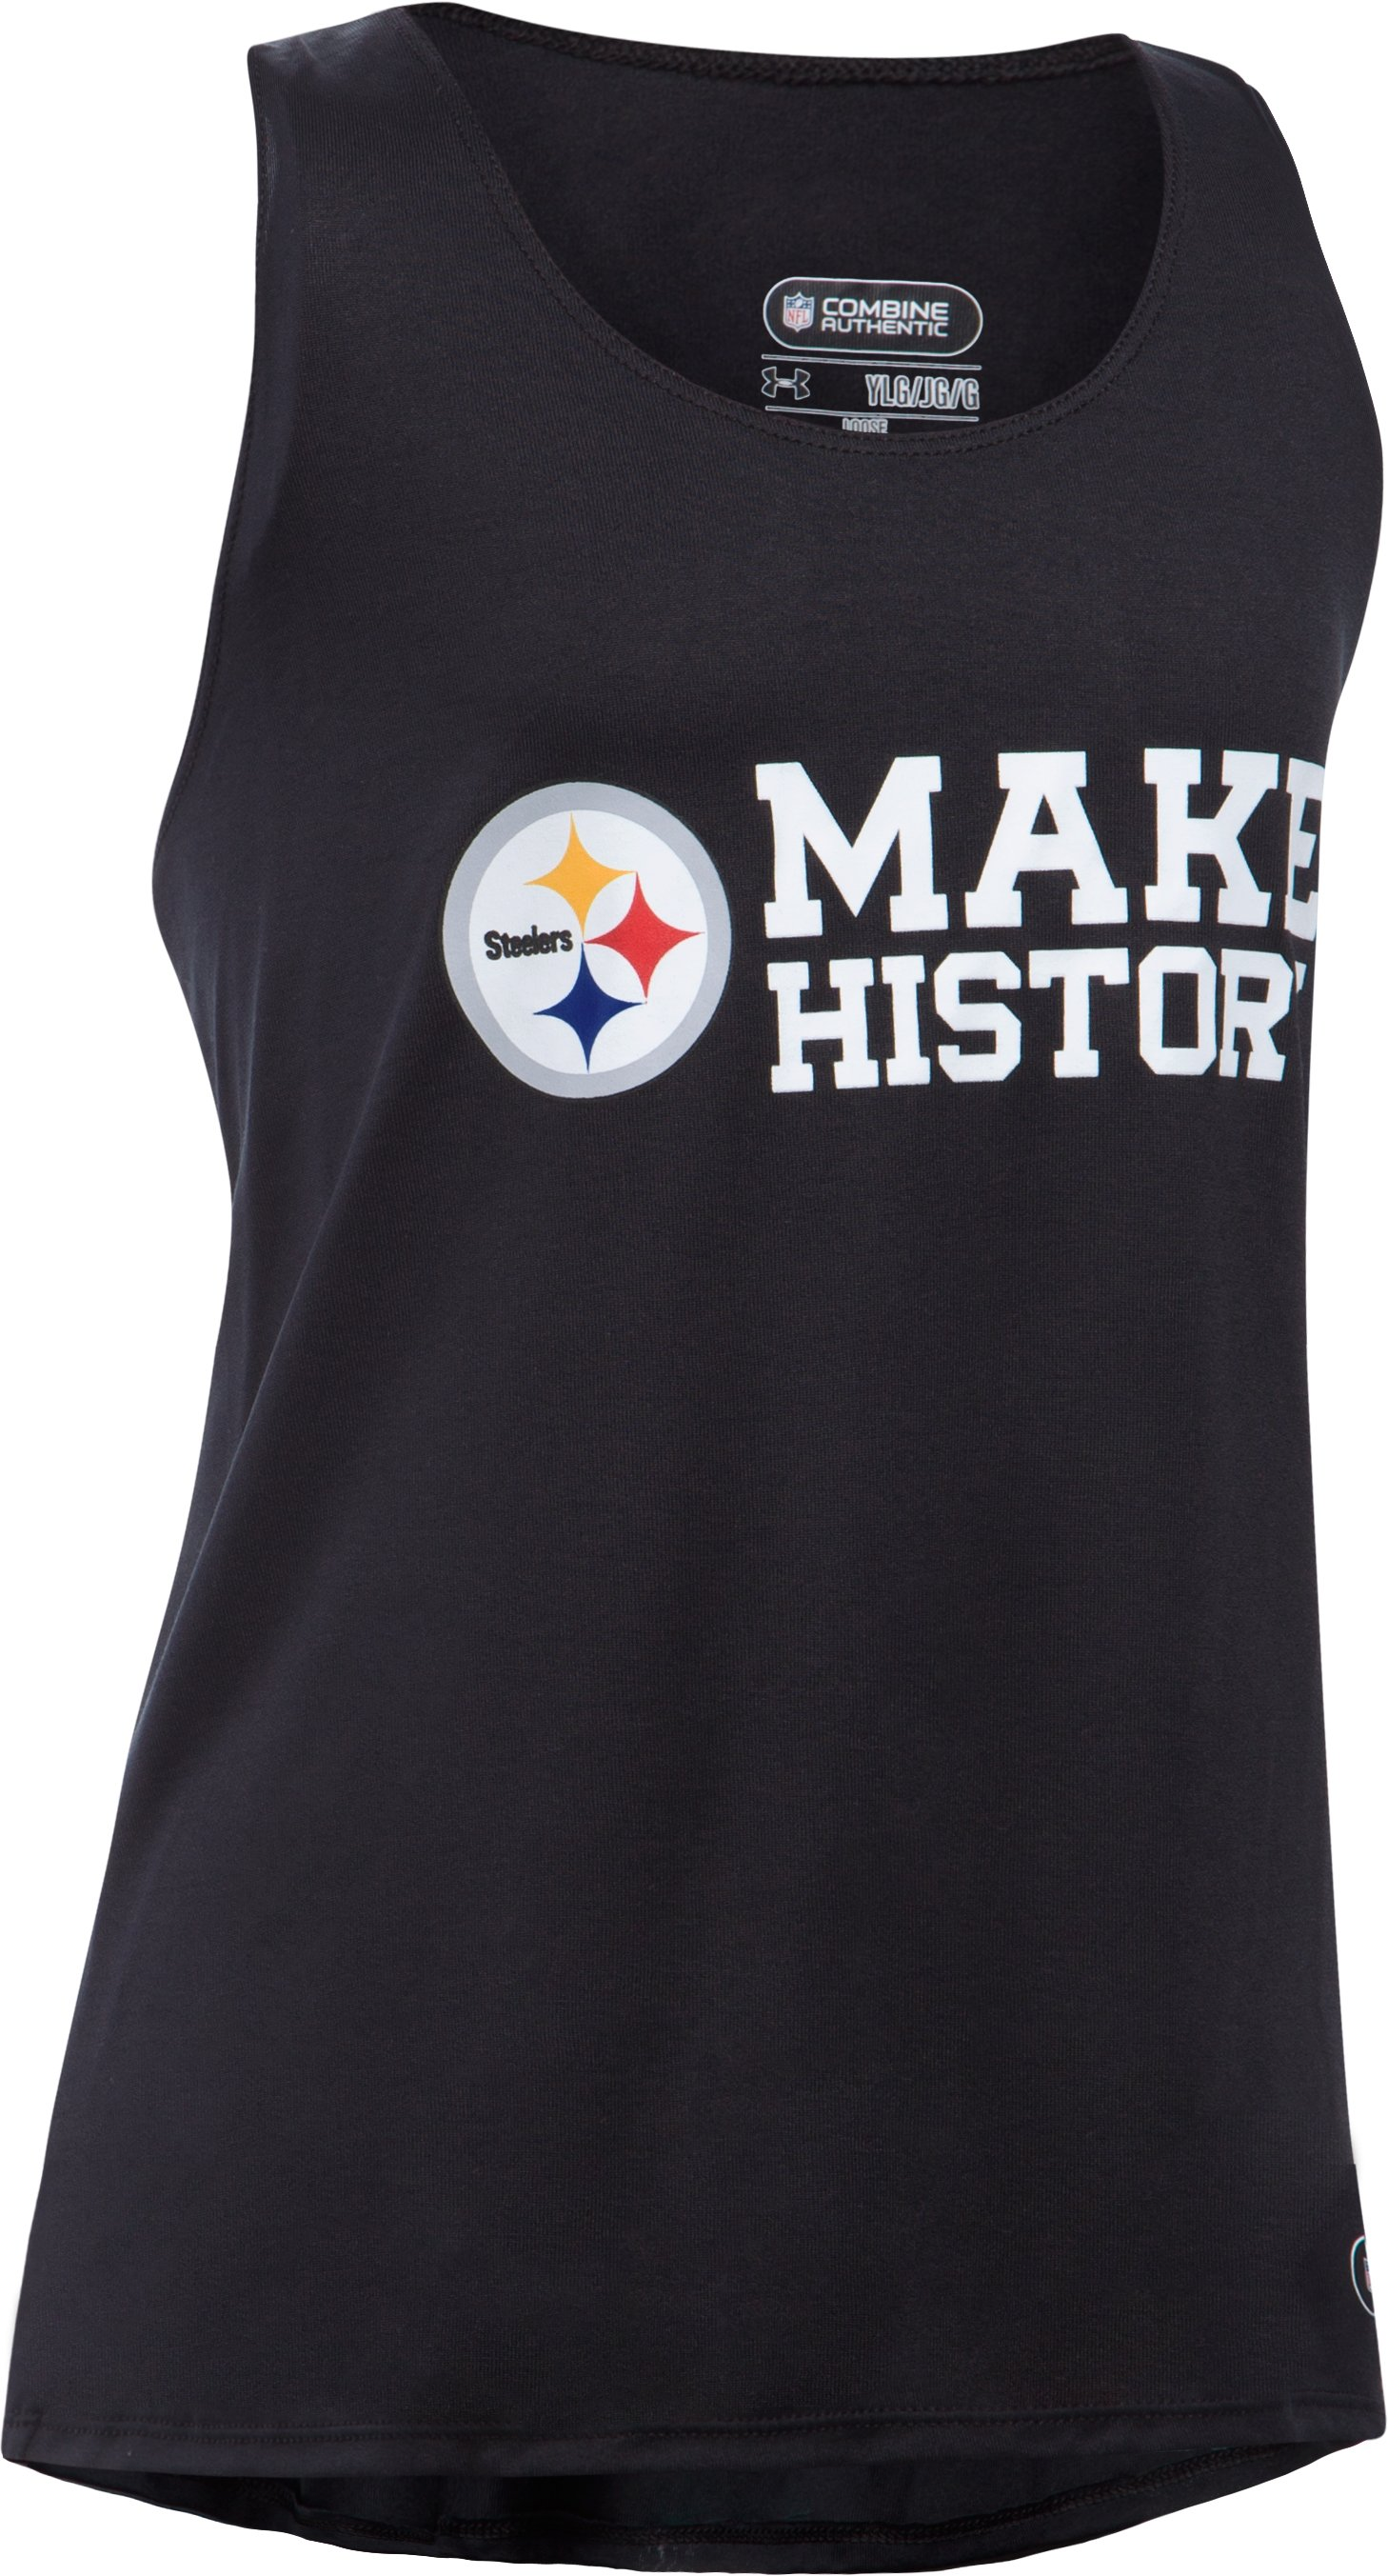 , Pittsburgh Steelers, zoomed